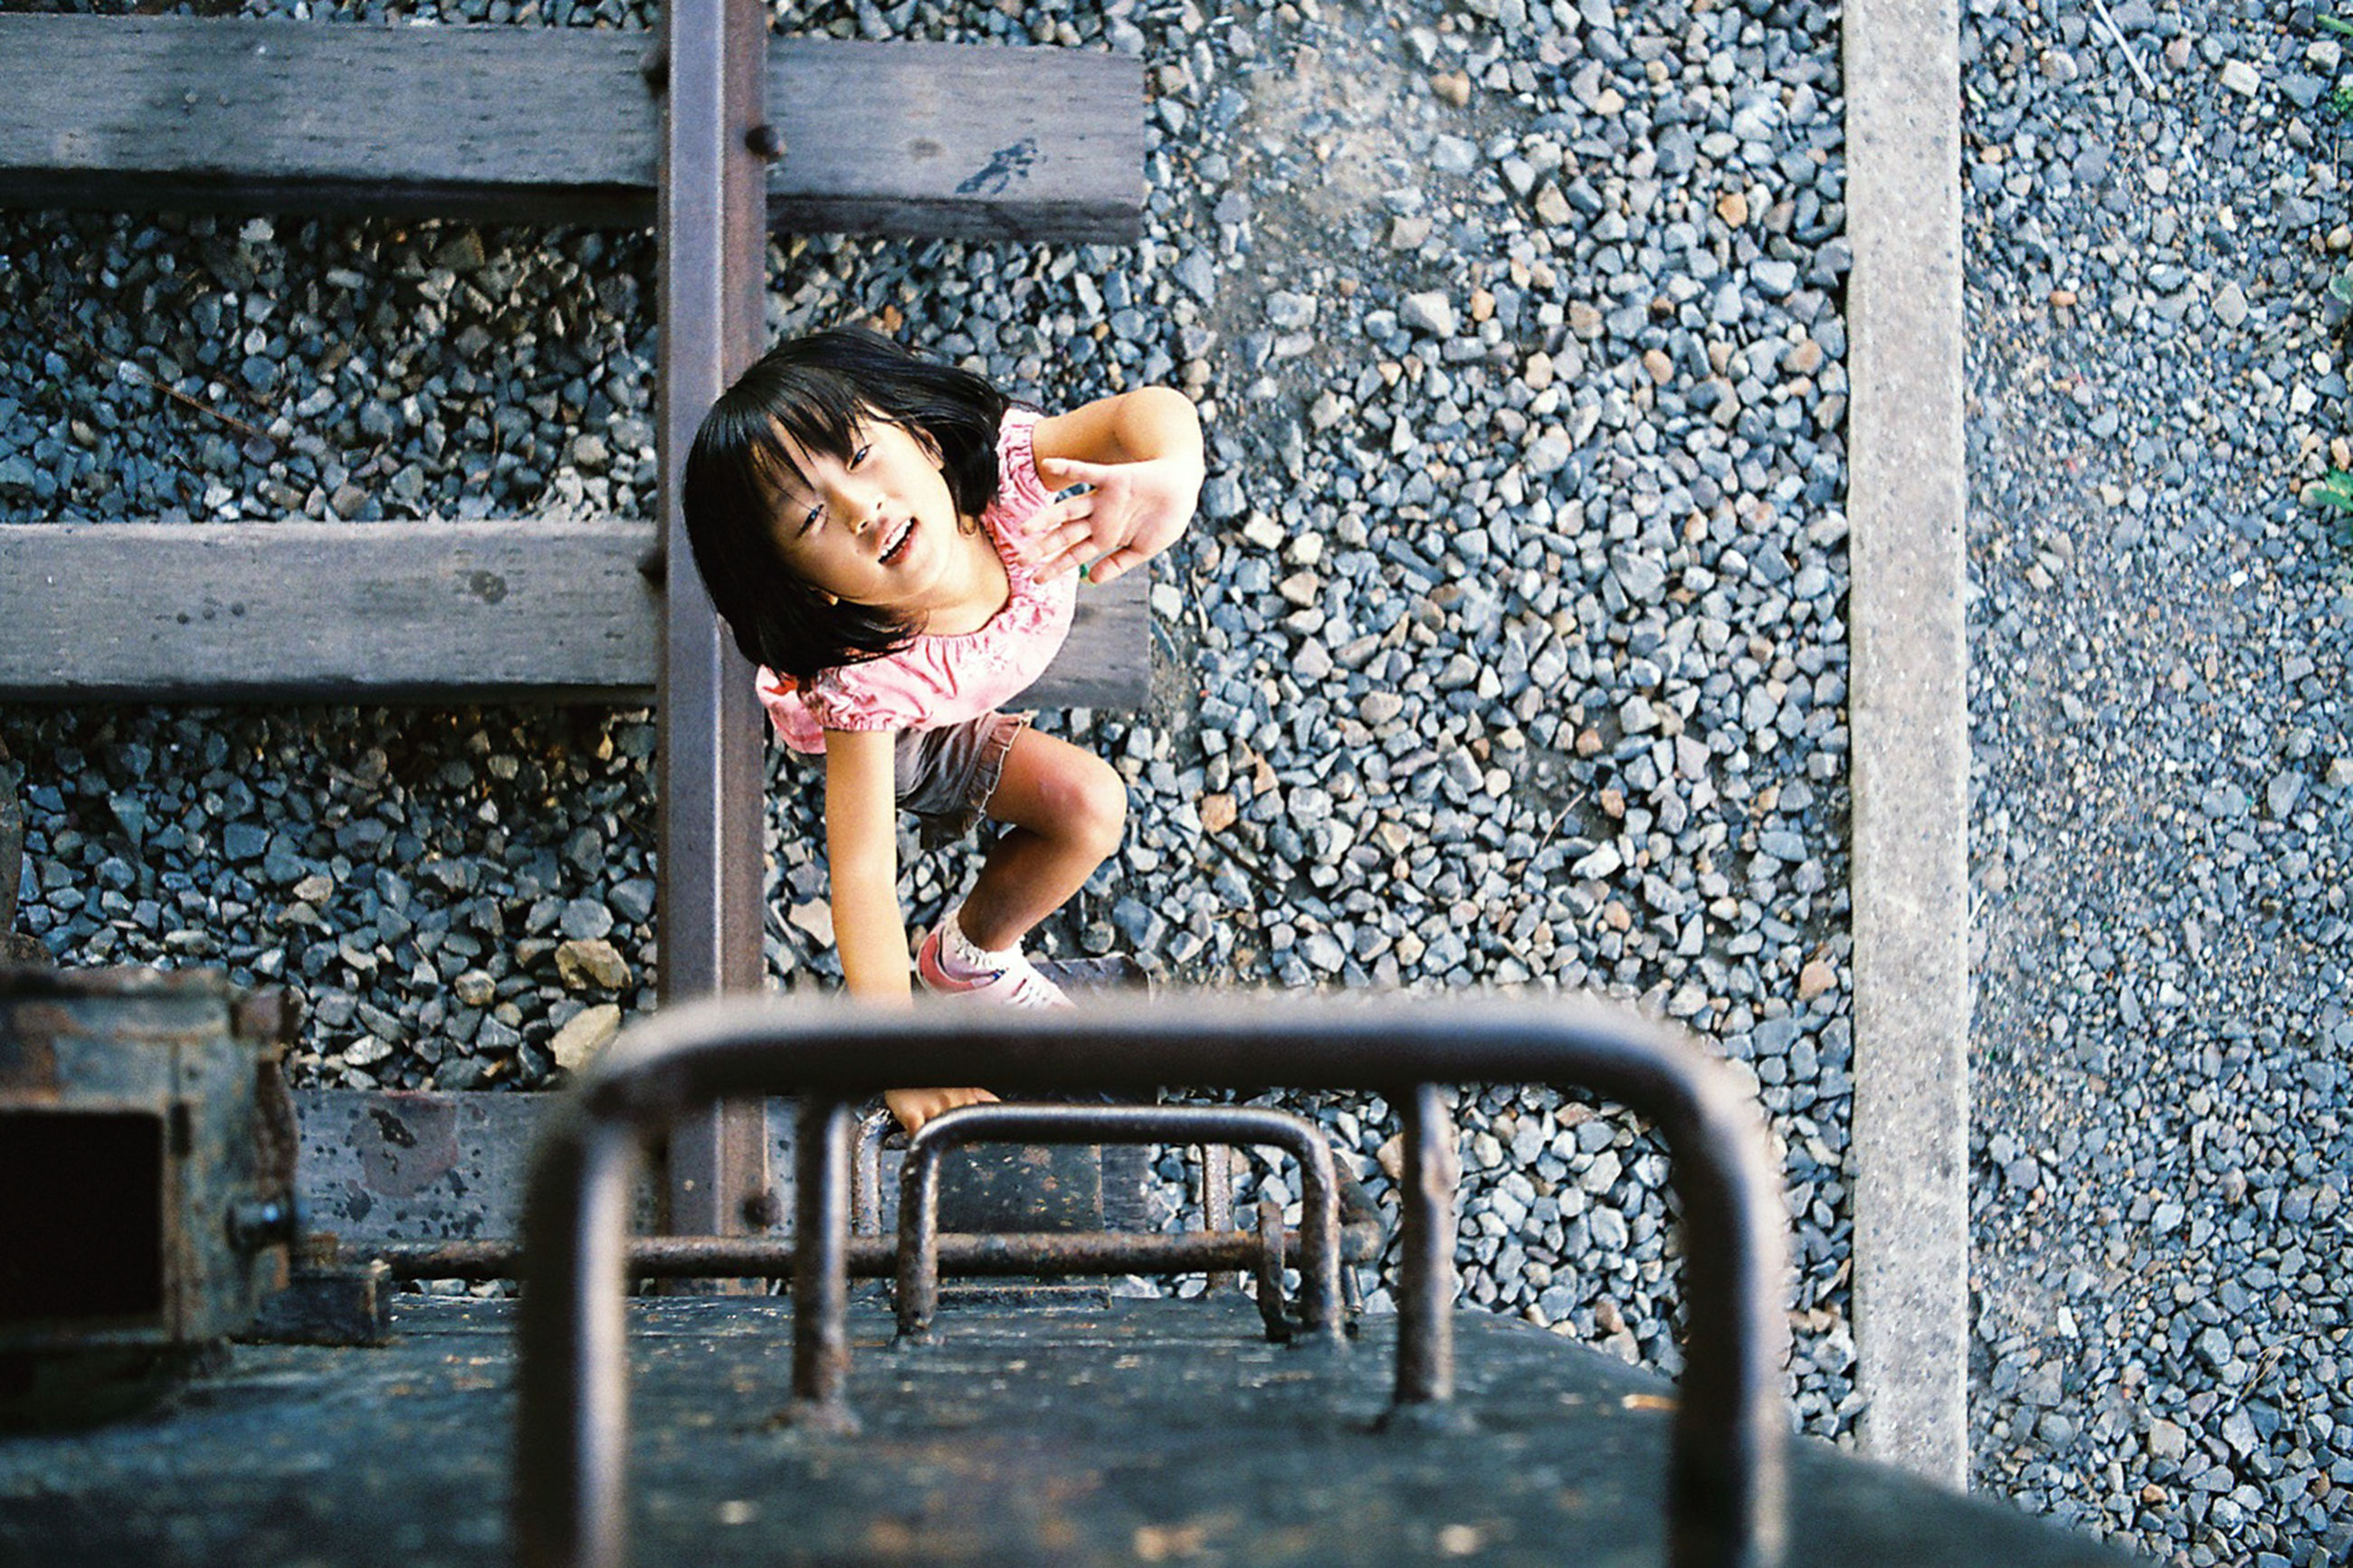 metal, childhood, day, railroad track, high angle view, chain, outdoors, transportation, metallic, full length, railing, playground, bench, rusty, abandoned, street, sitting, no people, sunlight, protection